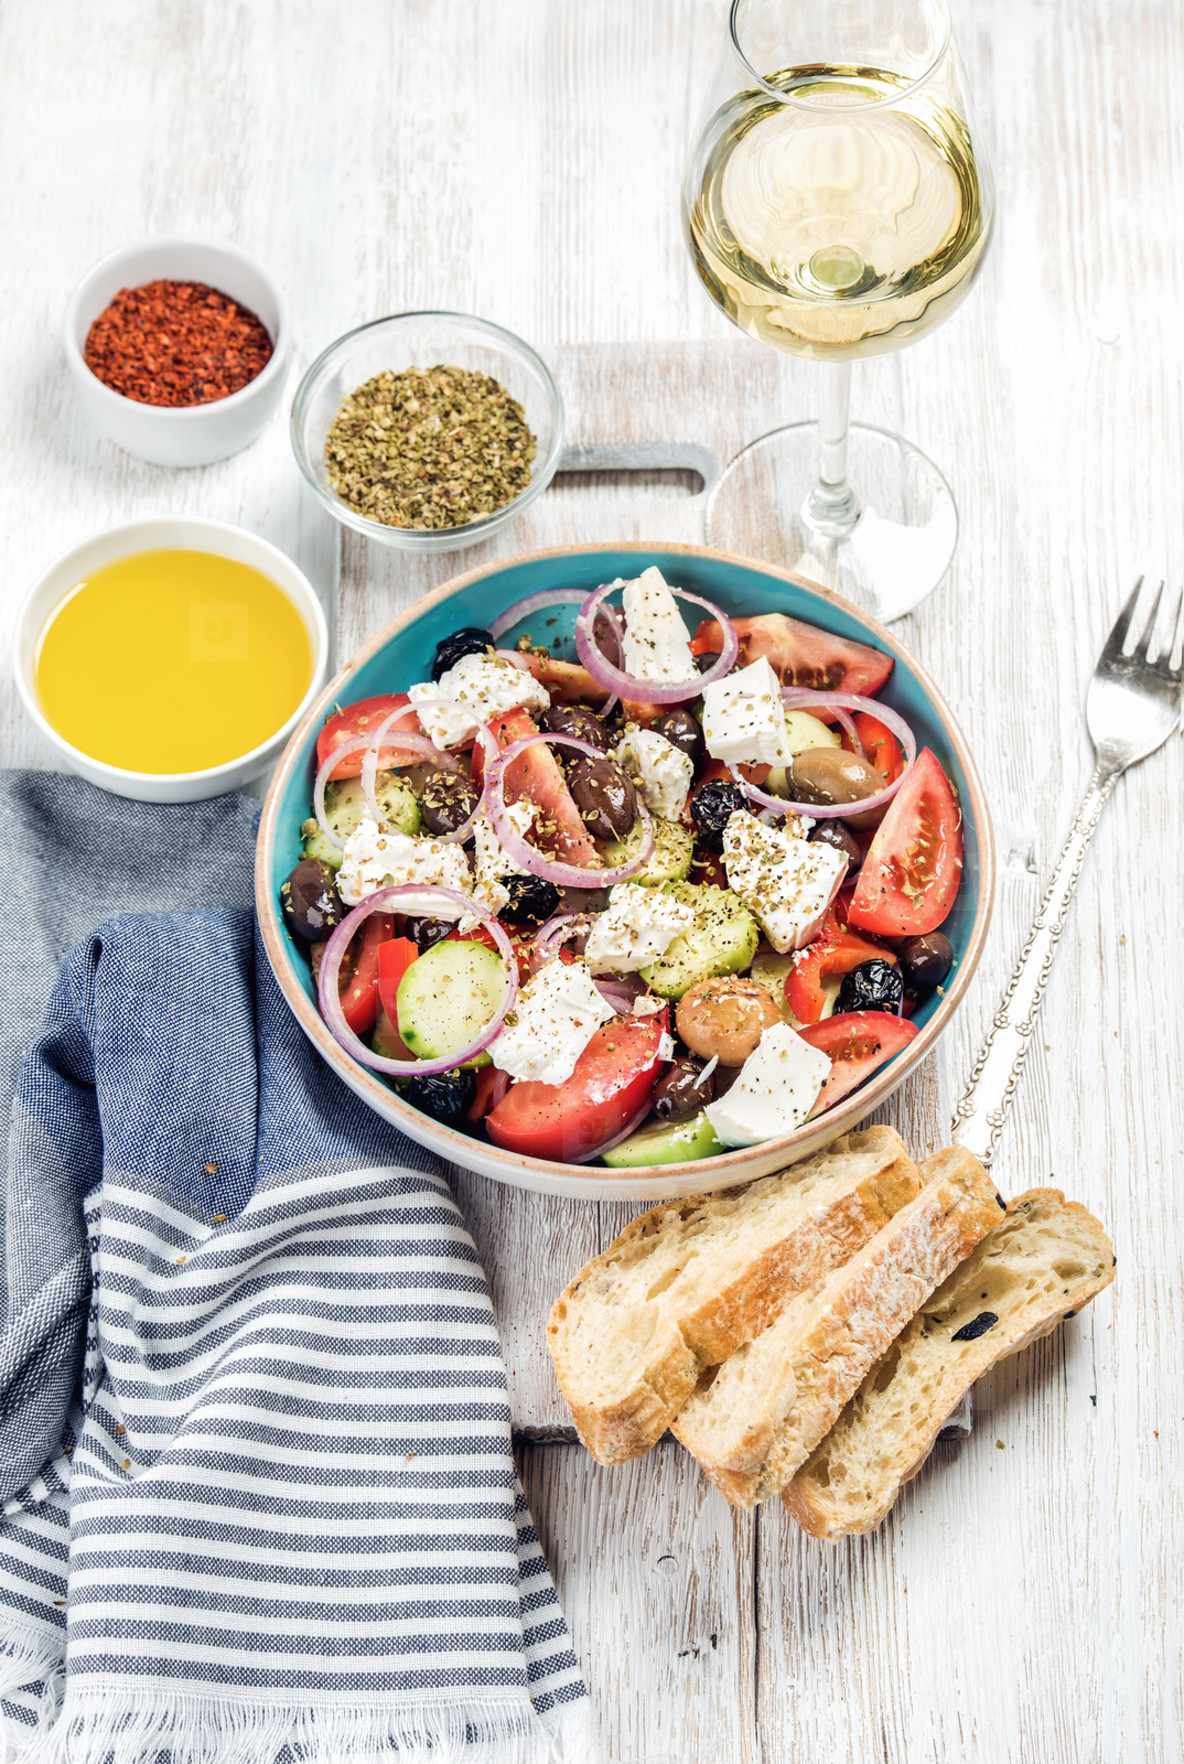 Greek salad with olive oil  bread slices  spices  white wine